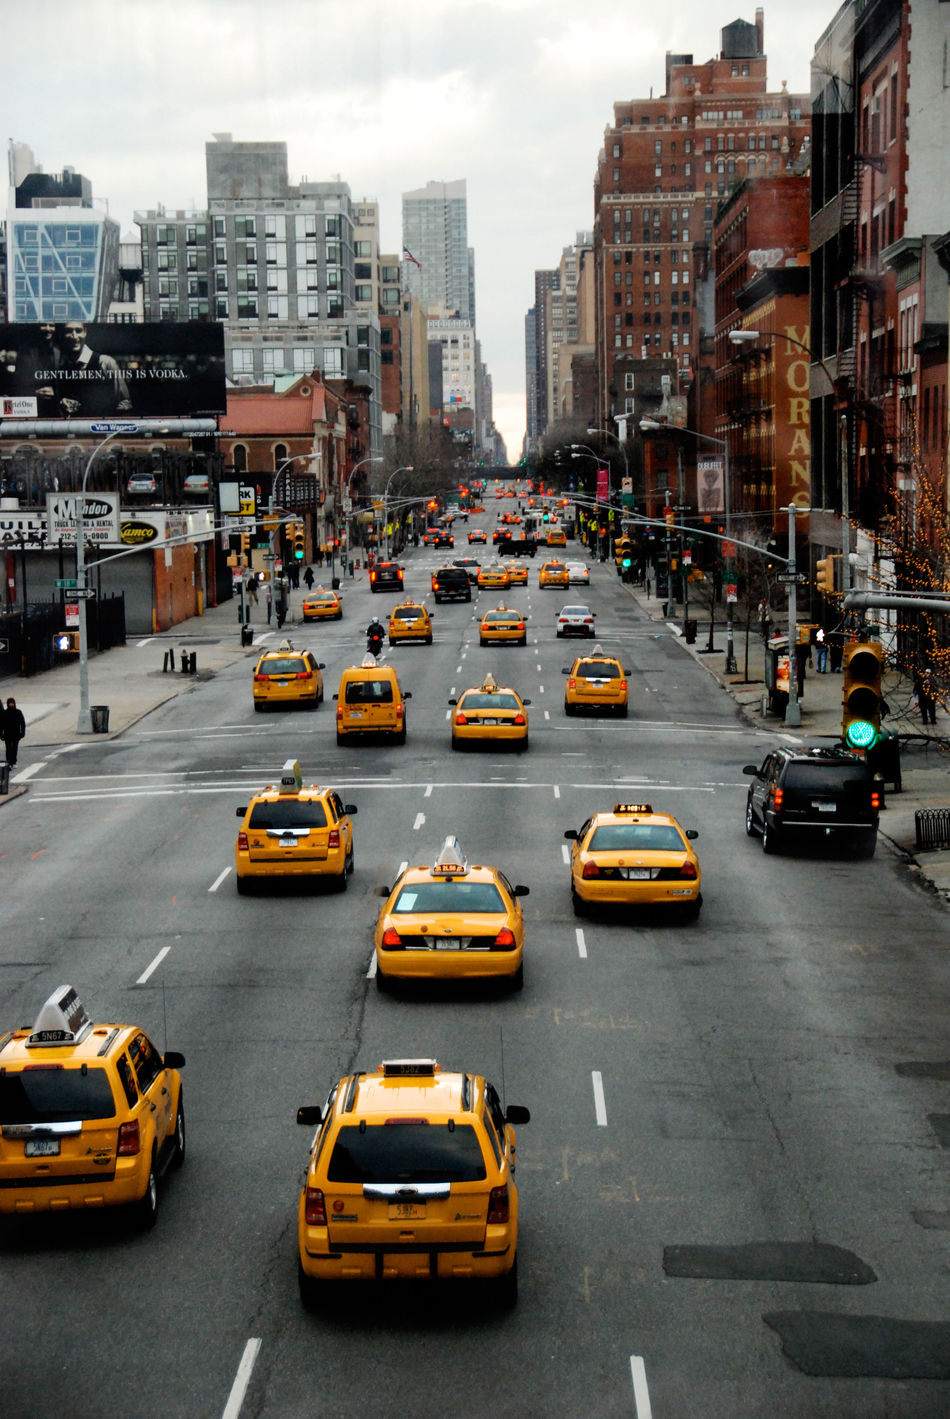 Taxi Cab Architecture Building Exterior Color Palette Car City City Life City Street Day Development Incidental People Land Vehicle Mode Of Transport Modern Office Building On The Move Outdoors Road Road Marking Rush Hour Street Traffic Transportation Travel Travel Destinations